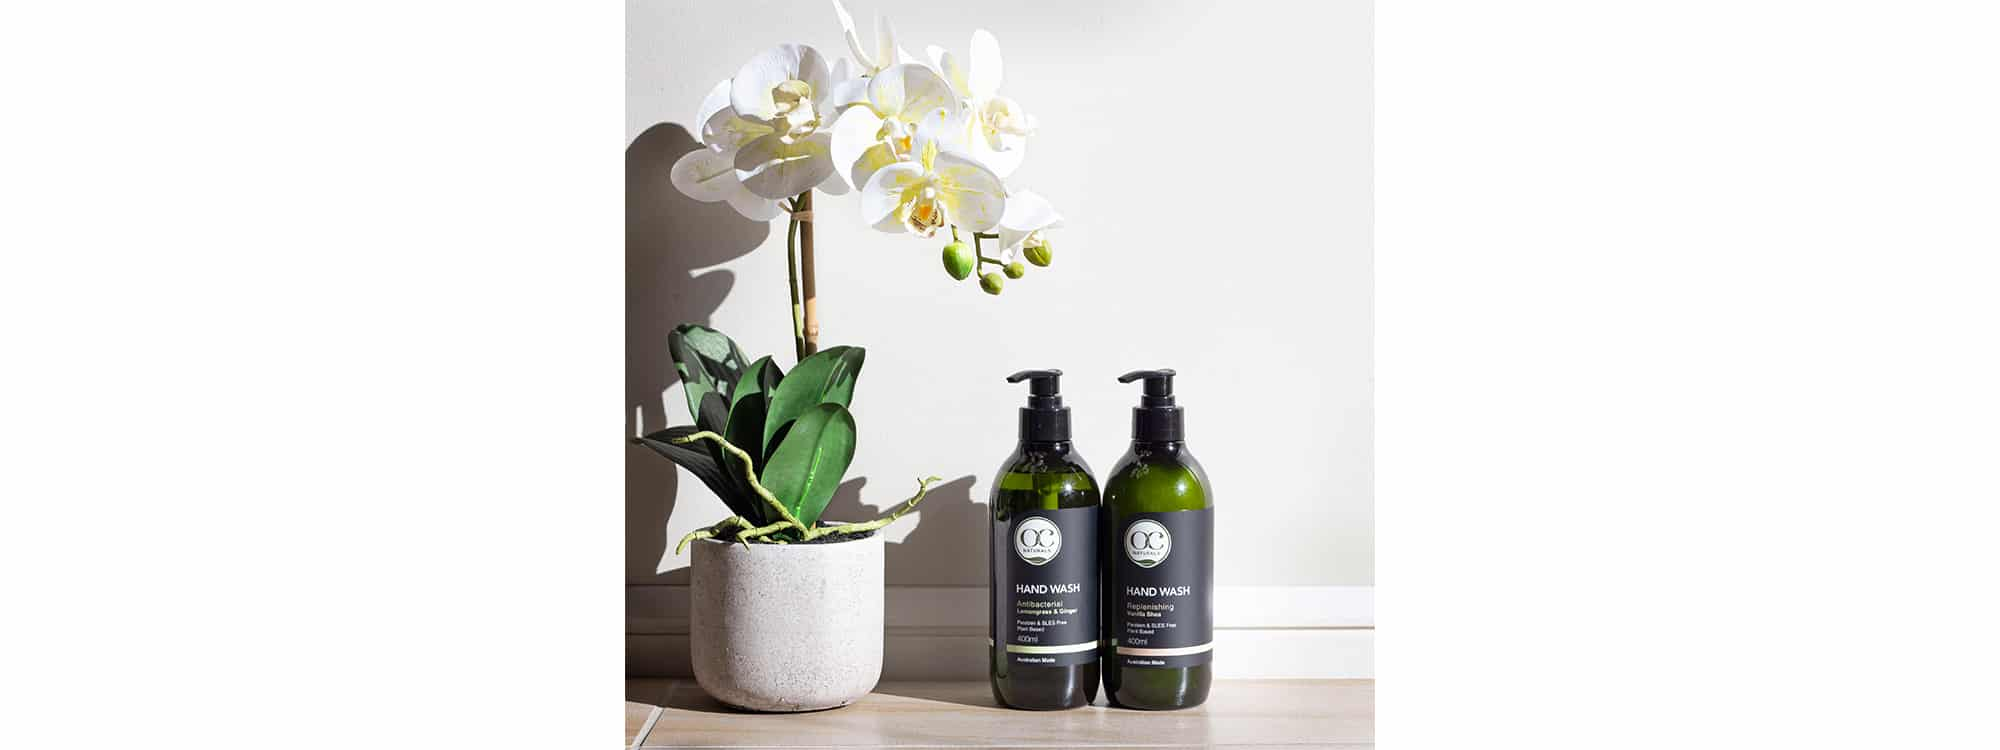 WIN an OC Naturals Hand & Body wash prize pack